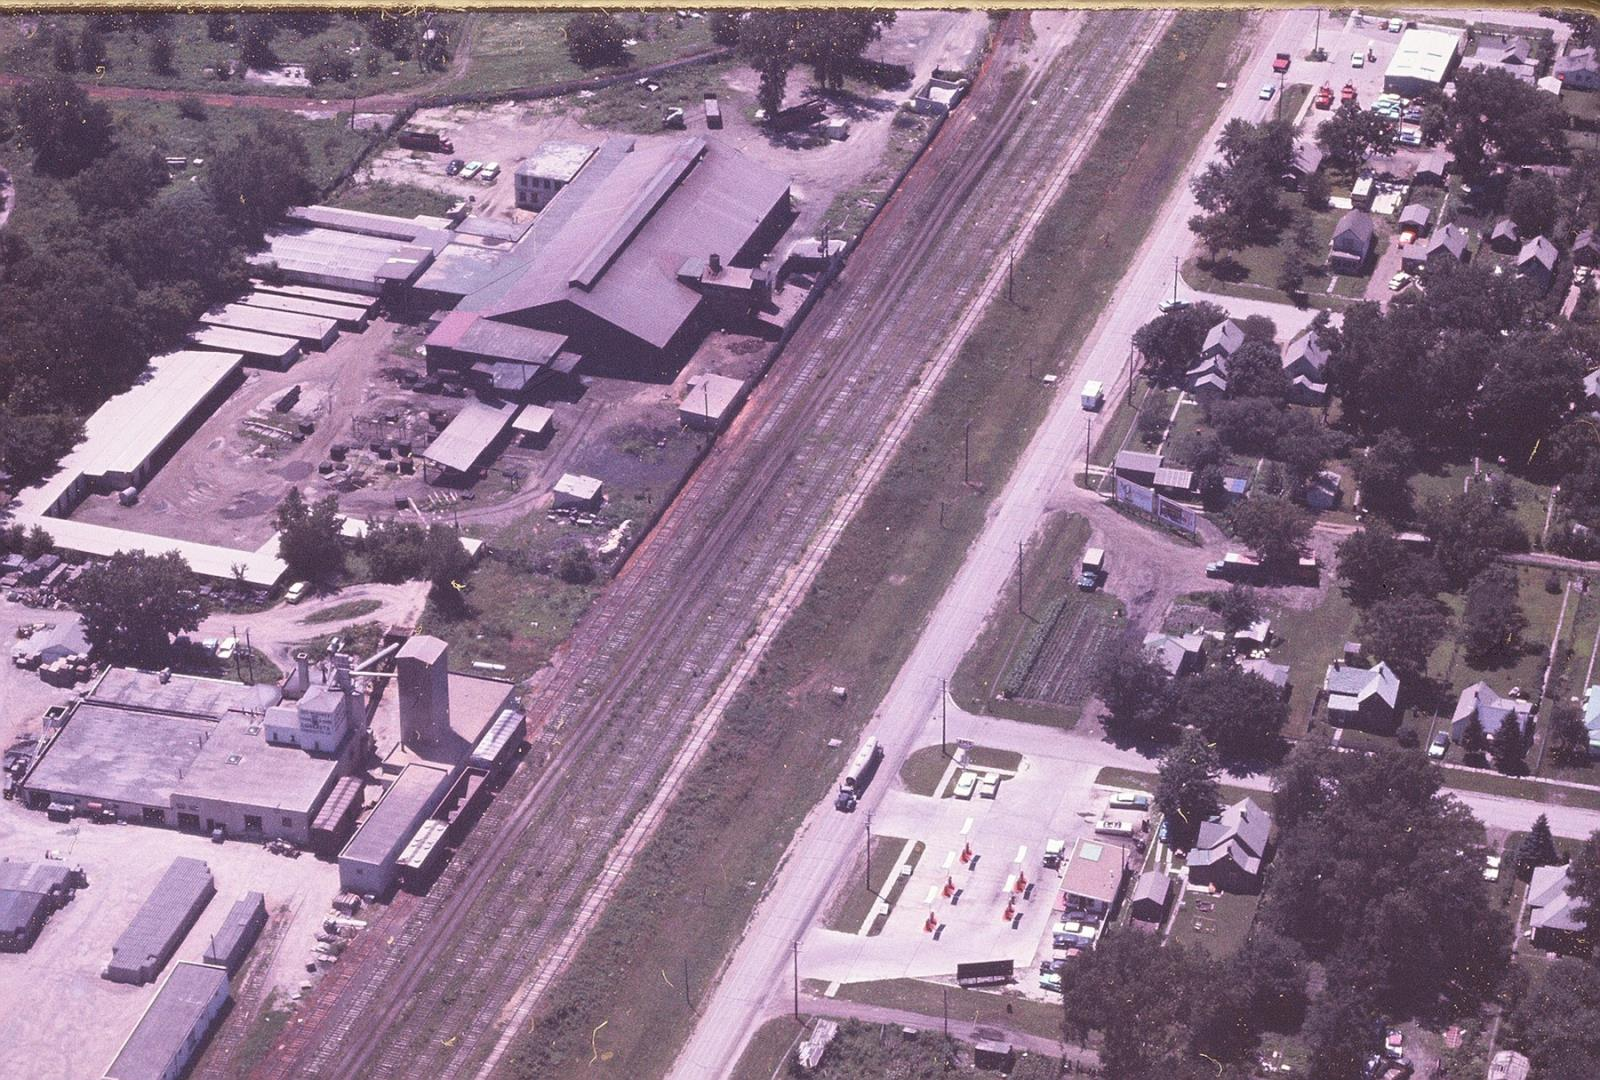 Railroad_05thSt_AerialView